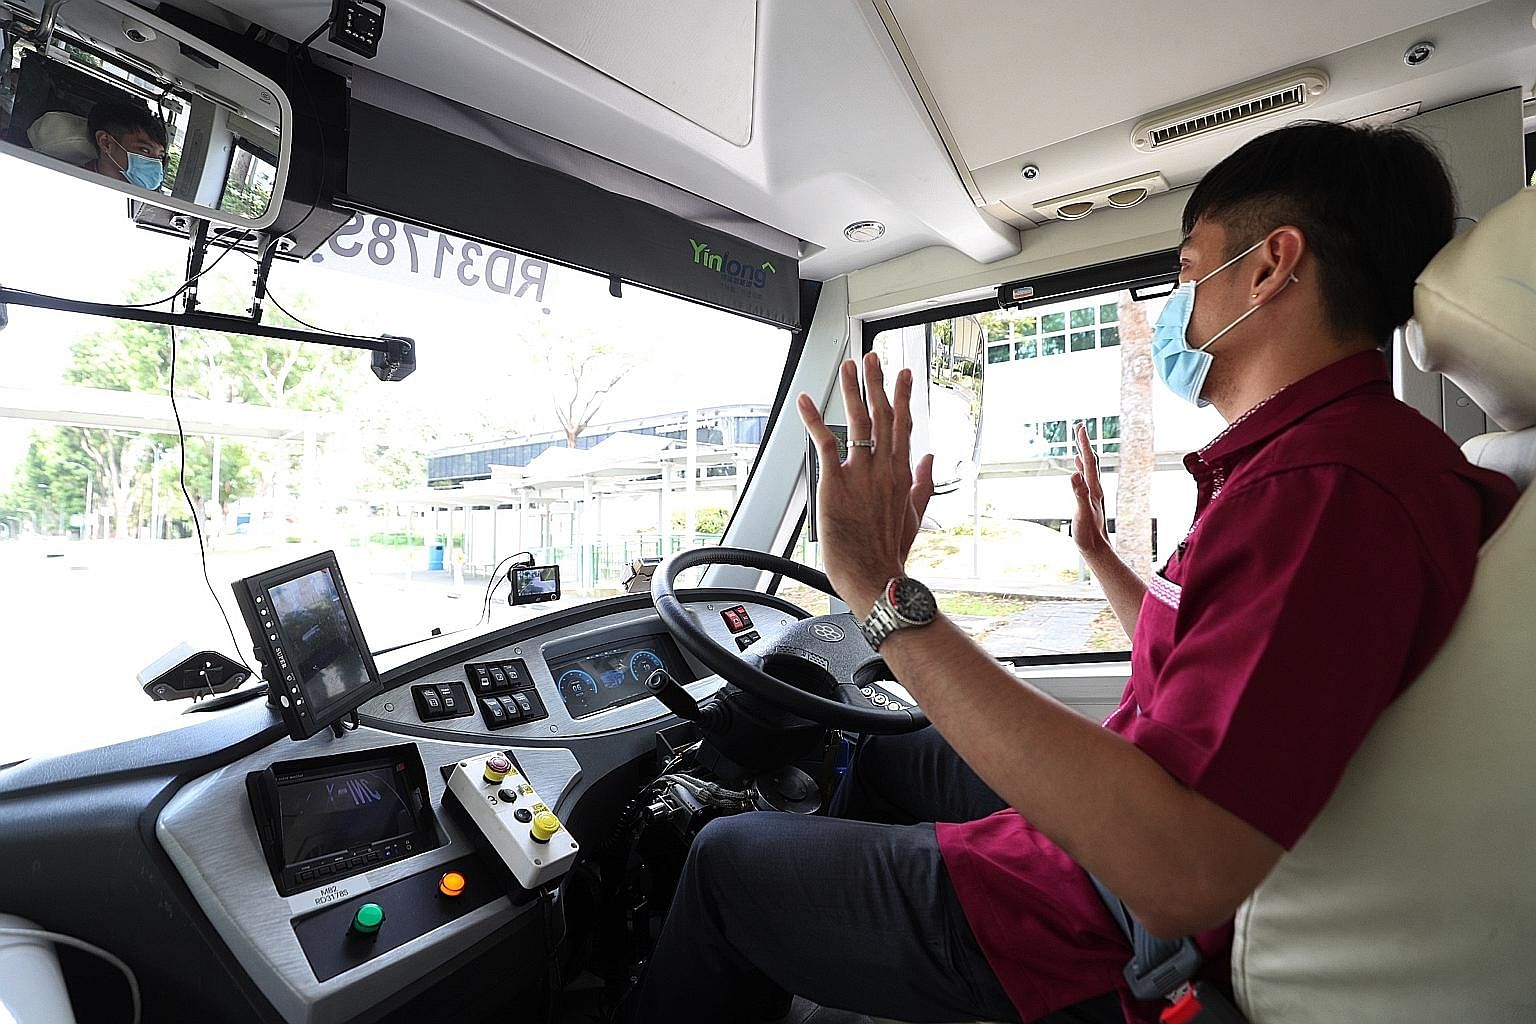 Commuters can now take driverless buses in two areas of Singapore for a small fee, in the first such trial since Singapore began experimenting with autonomous vehicles on the roads in 2015. From now till April 30, the buses will run in Singapore Scie